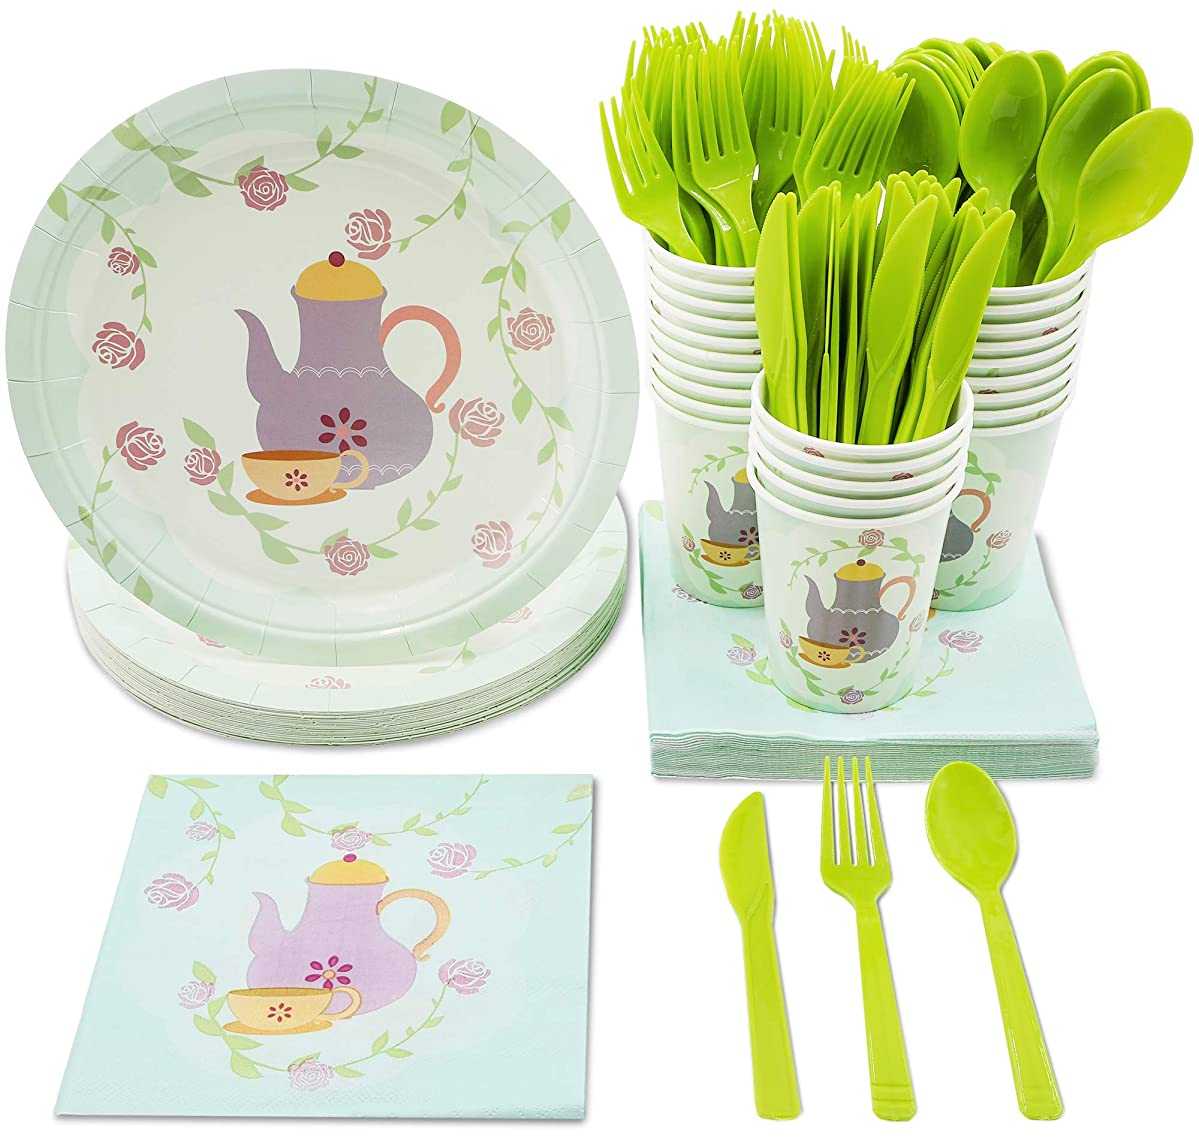 Tea Party Supplies – Serves 24 – Includes Plates, Knives, Spoons, Forks, Cups and Napkins. Perfect Birthday Party Pack for Girls Themed Tea Parties, Vintage Floral Tea Party Design